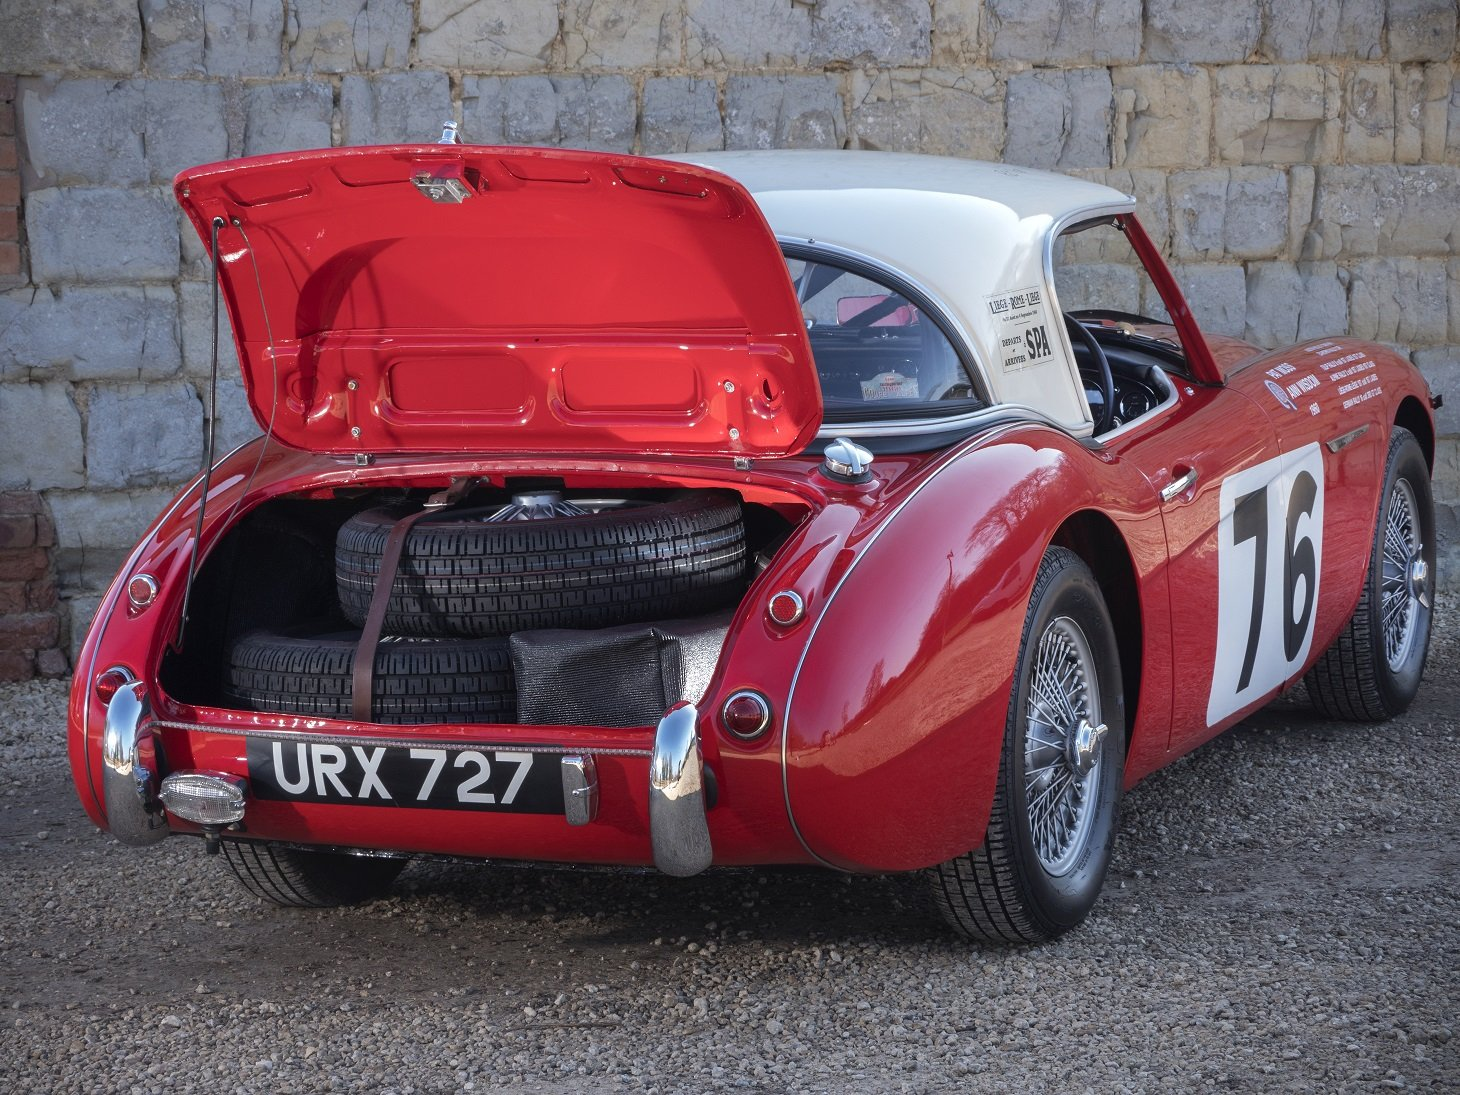 The ex-Works, Moss/Wisdom, 1960 Liege-Rome-Liege Winning car For Sale (picture 5 of 6)